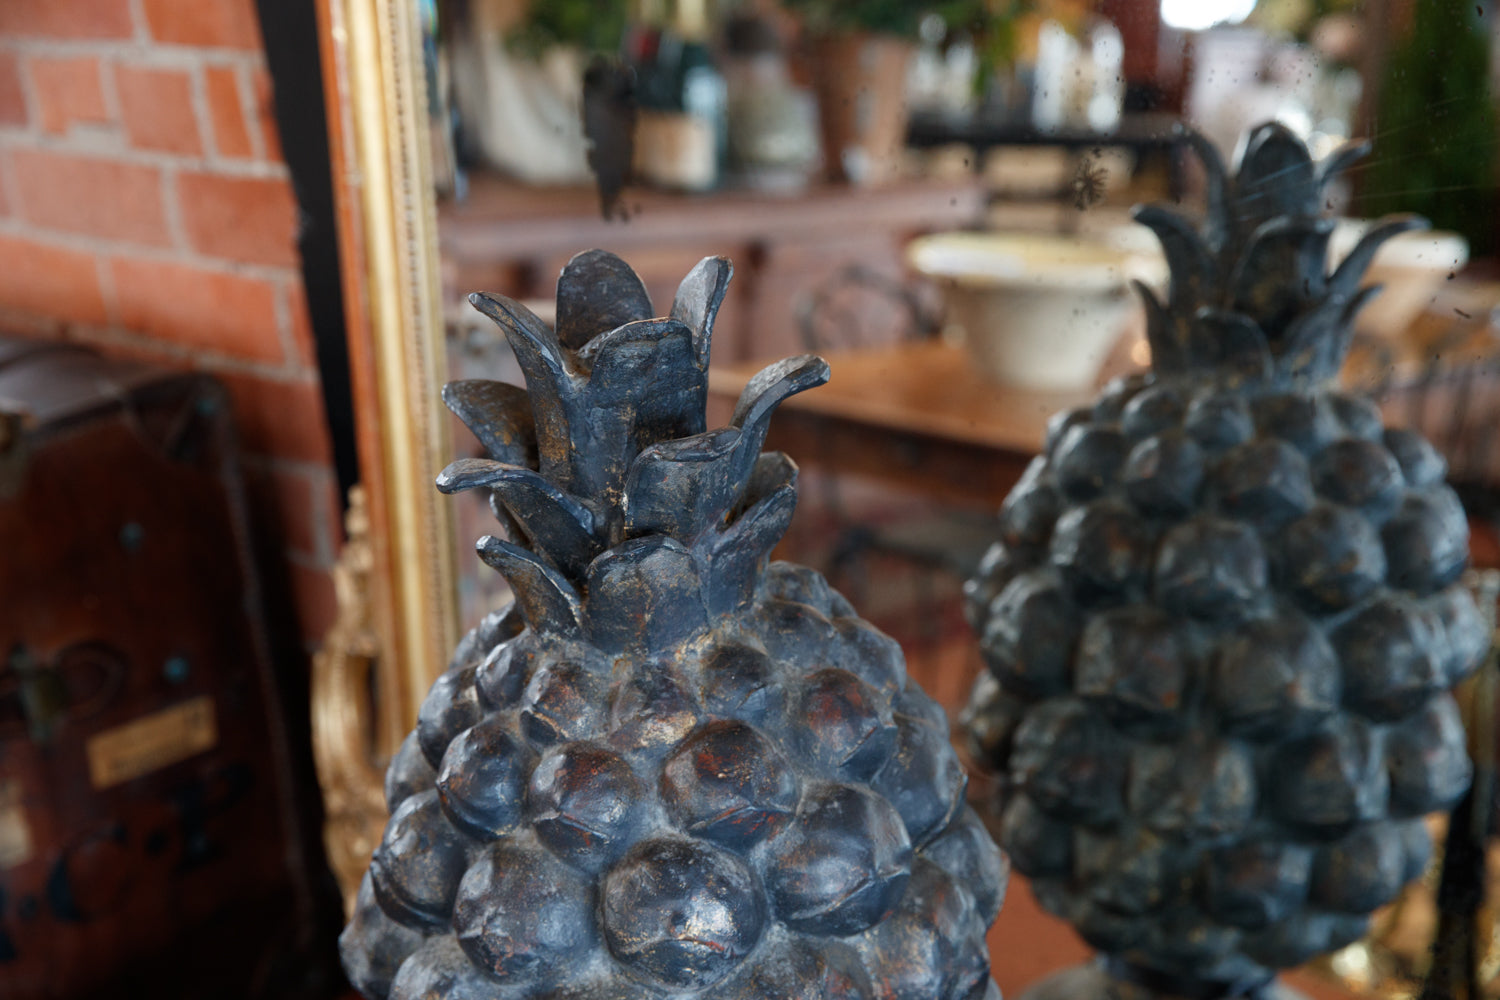 French Cast Iron Pineapple Finials